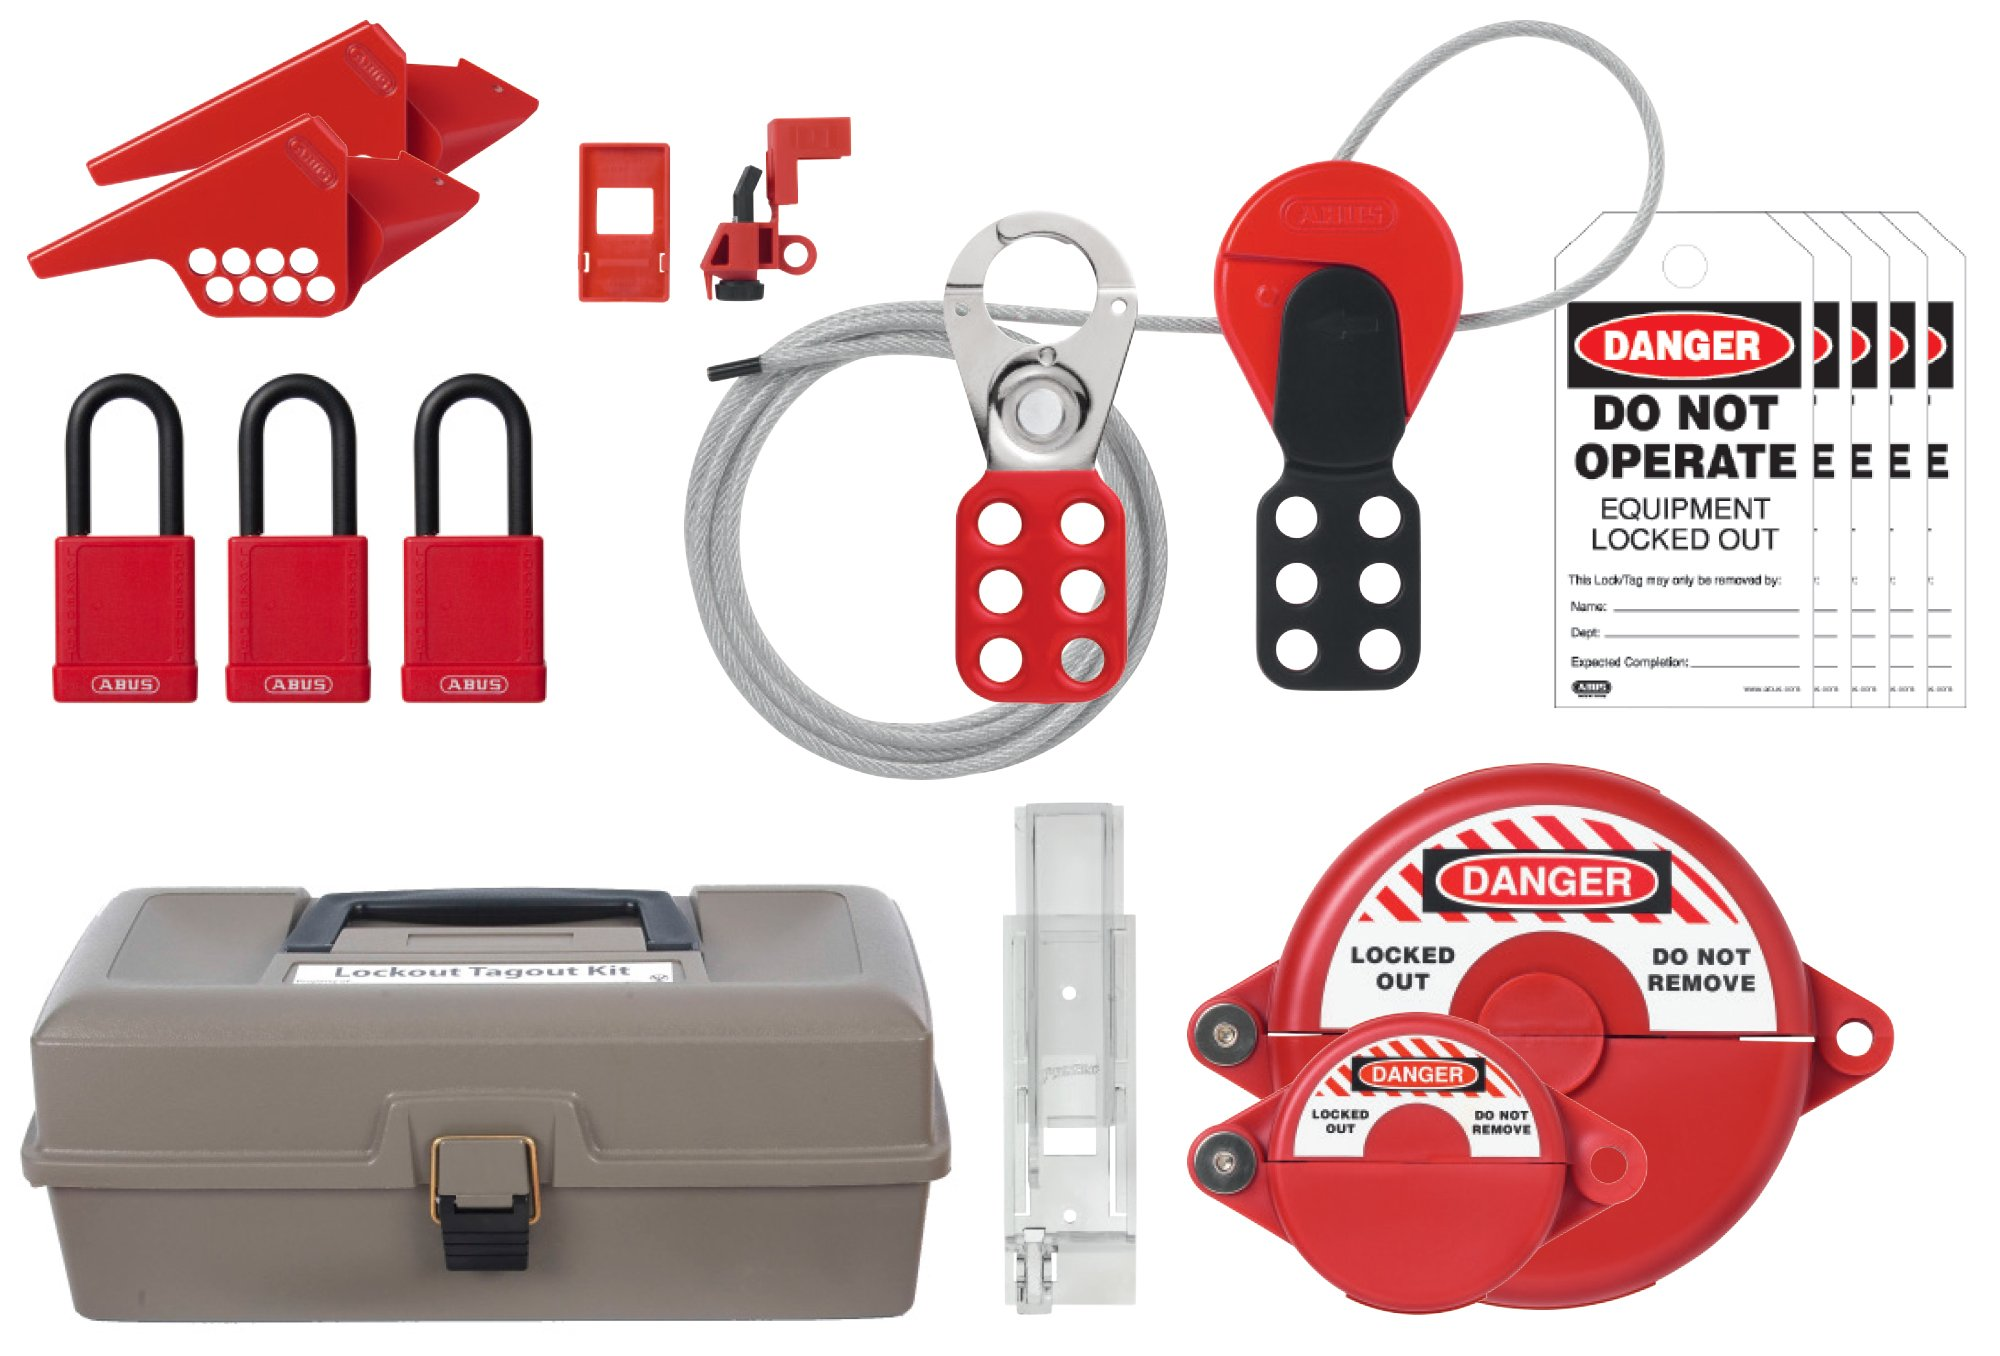 ABUS K930 Safety Lockout Tagout Electrical, Valve Toolbox Kit by ABUS (Image #1)